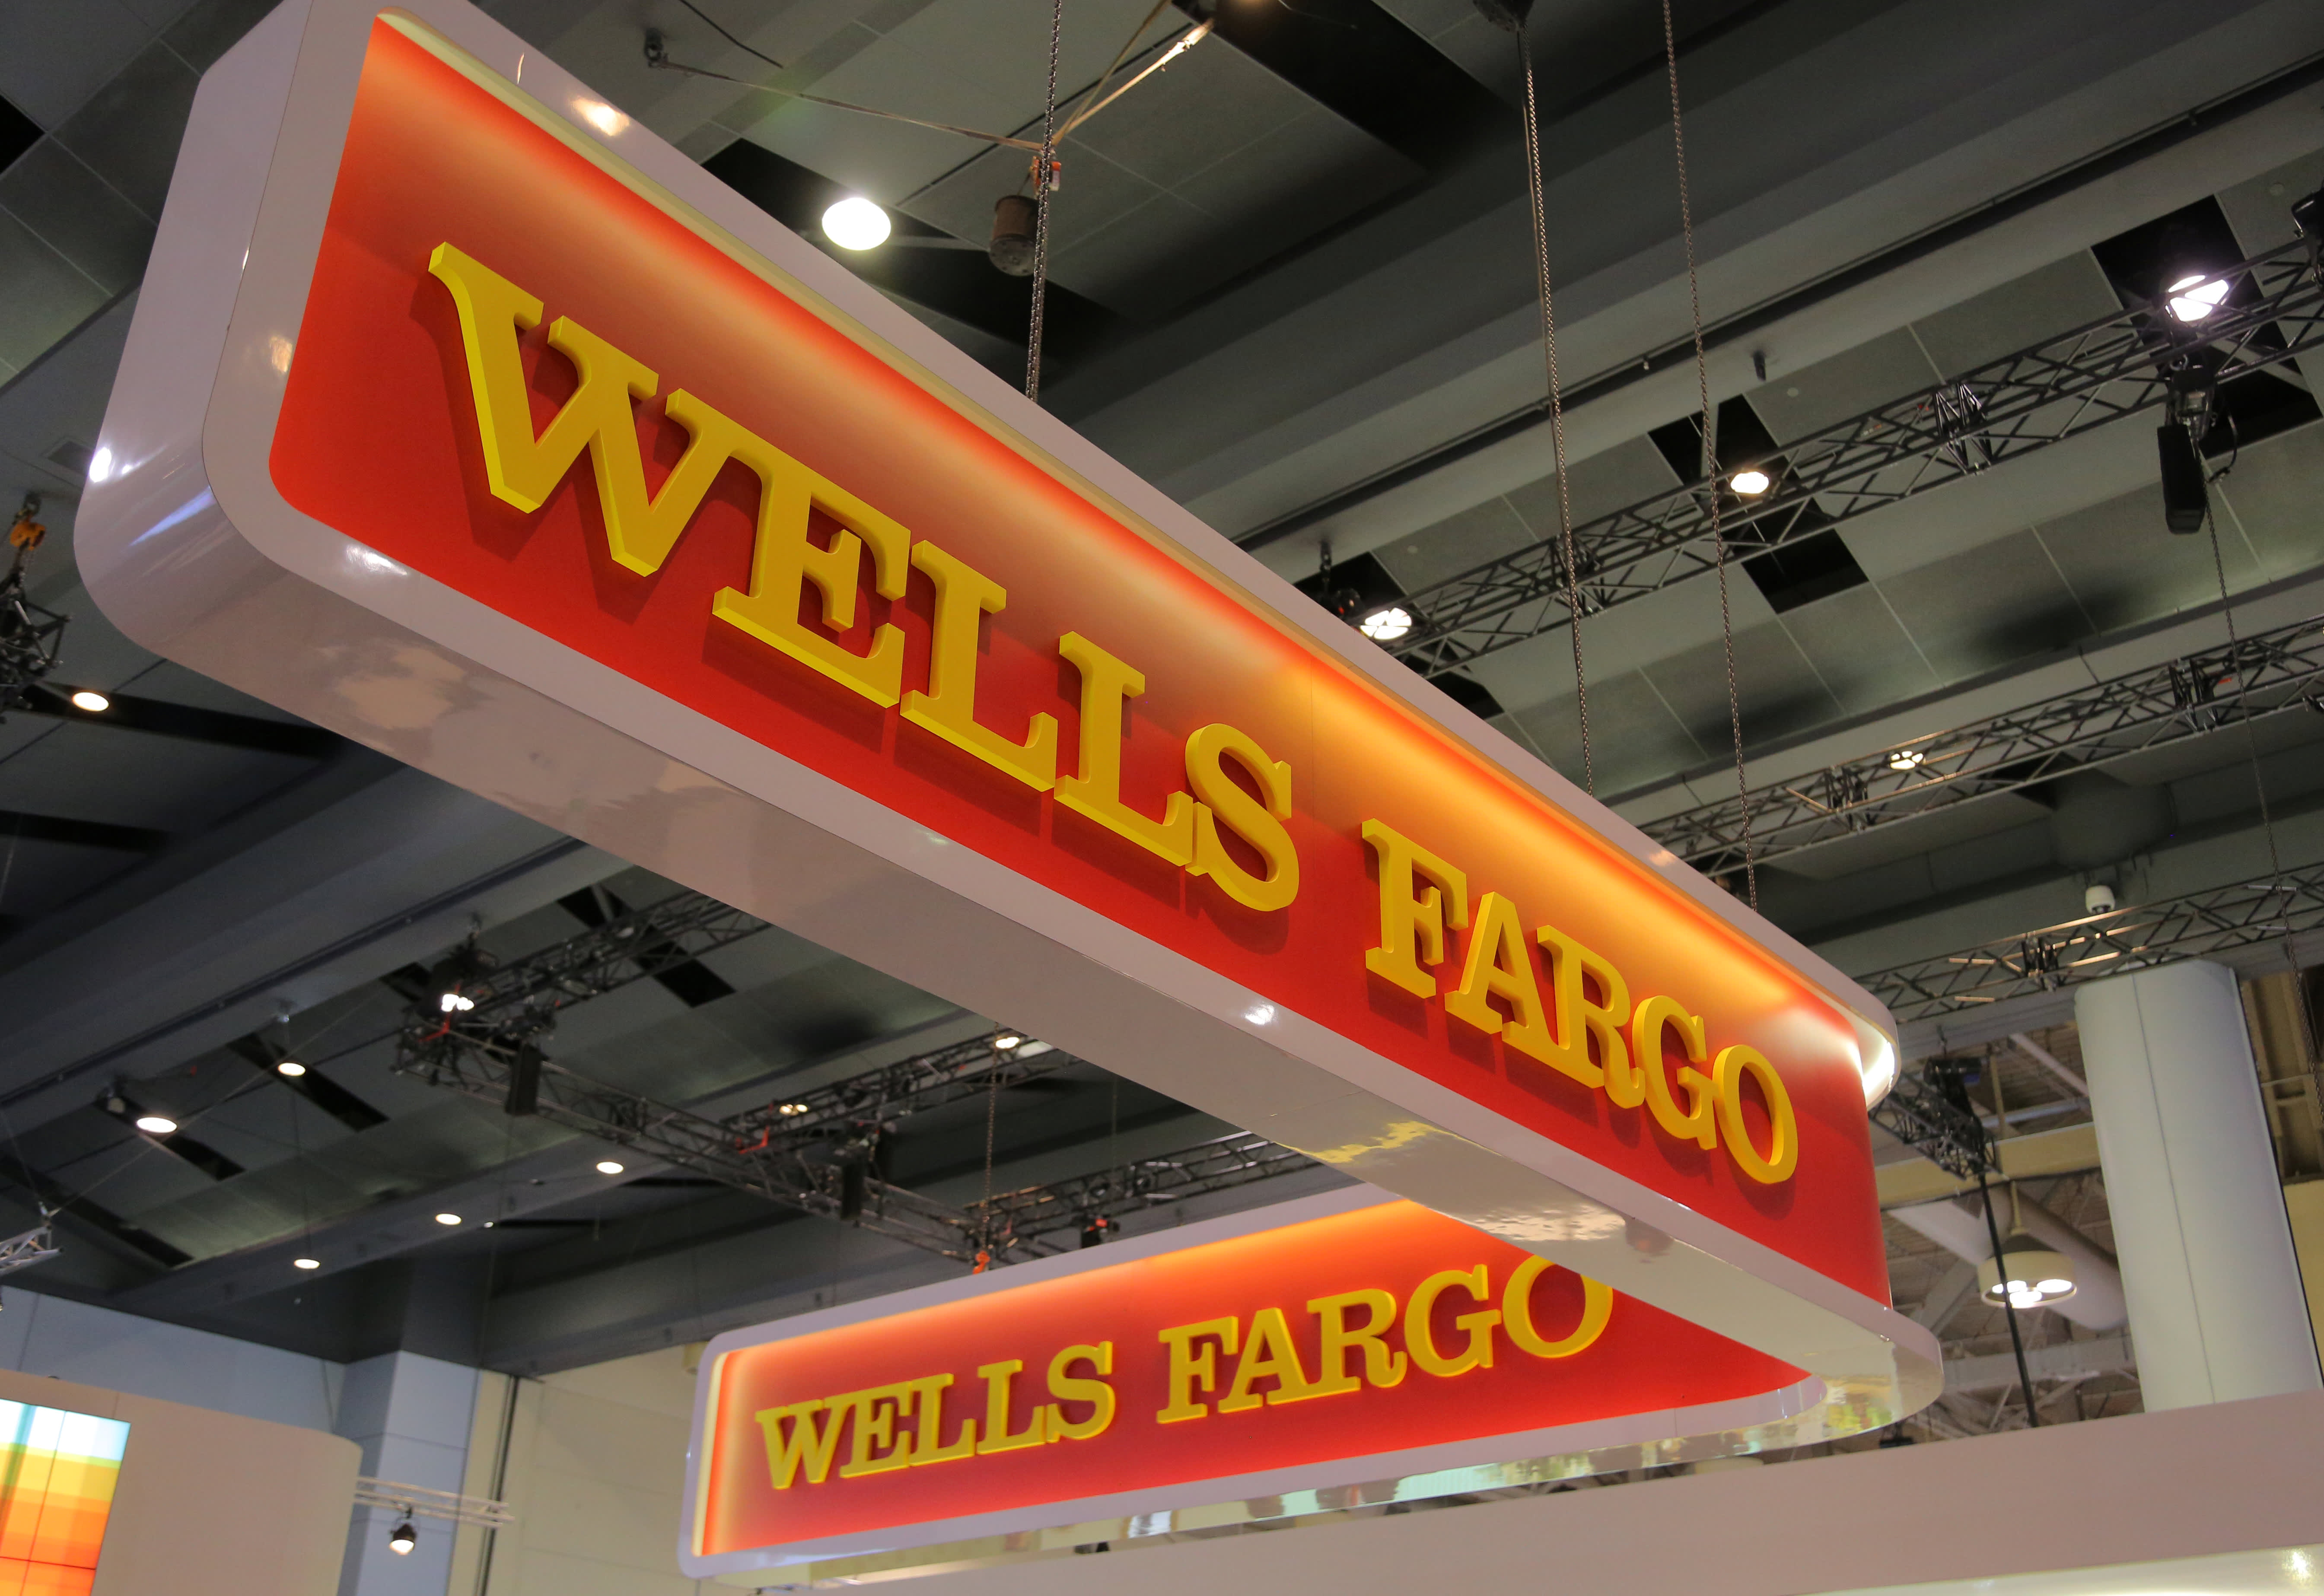 Wells Fargo will no longer accept applications for home equity lines of credit